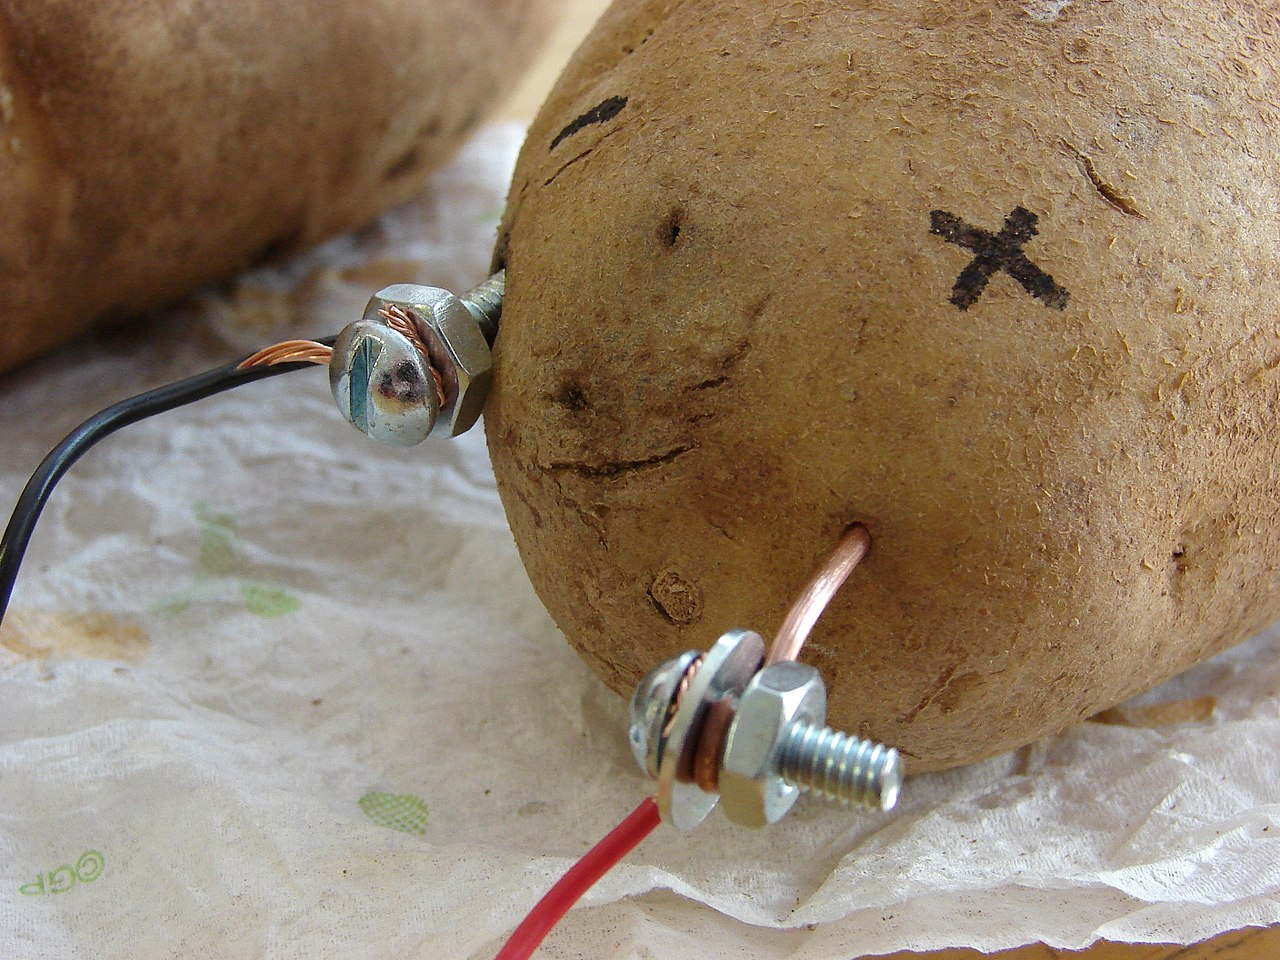 1280px-Potato-Battery-5495_700.jpg